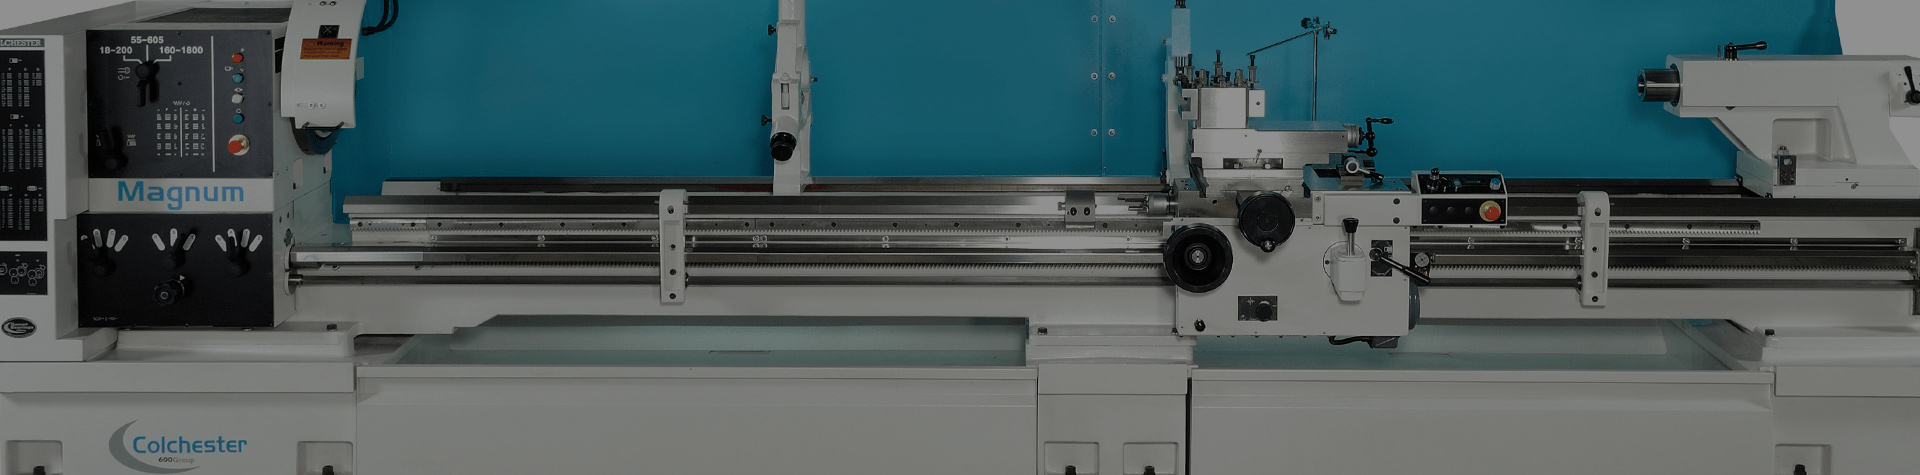 rk-slider-lathes